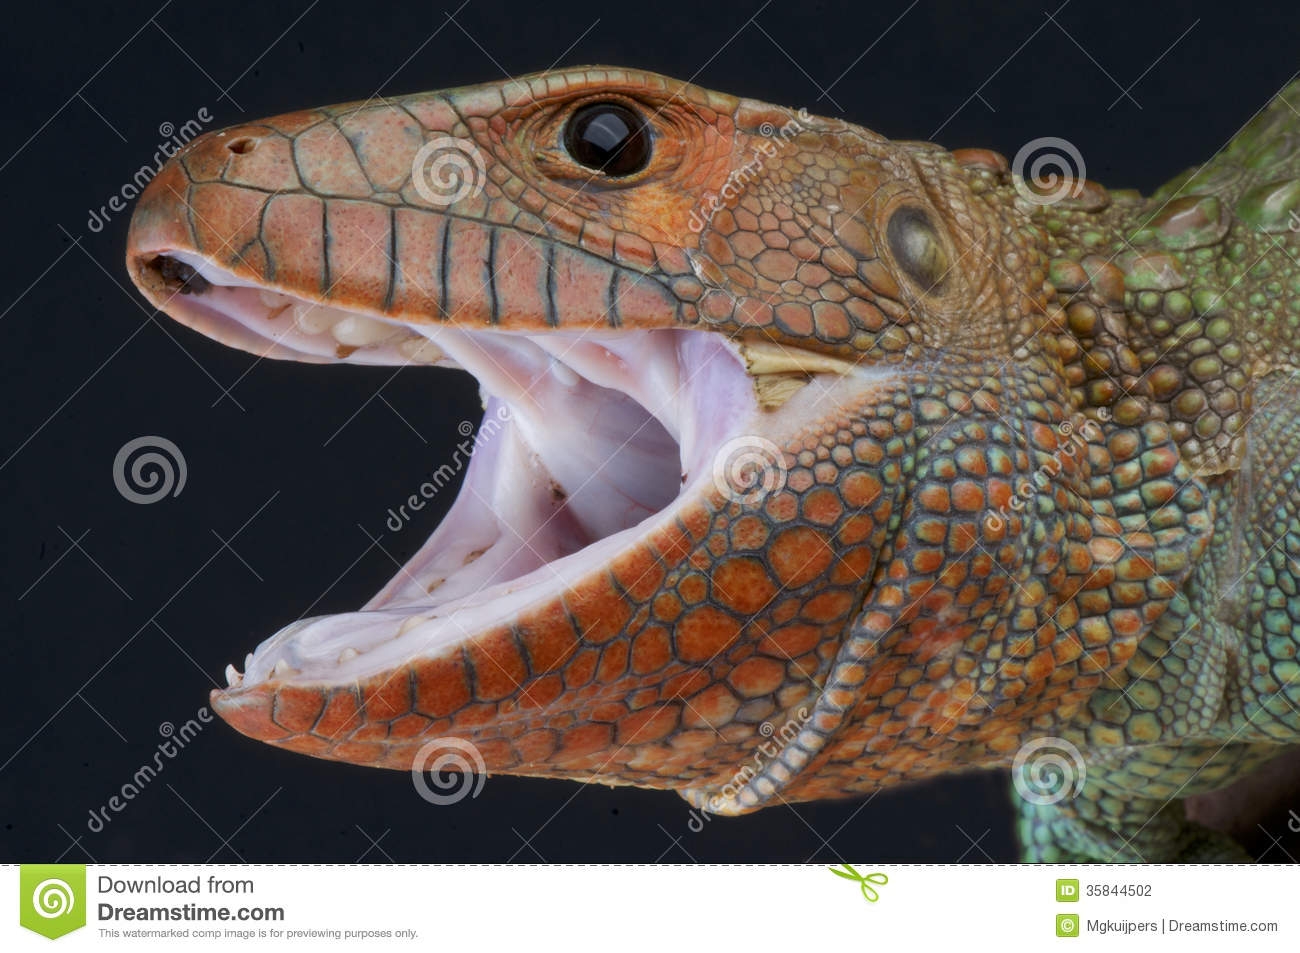 The Caiman lizard is a large semi-aquatic lizard that inhabits the ...